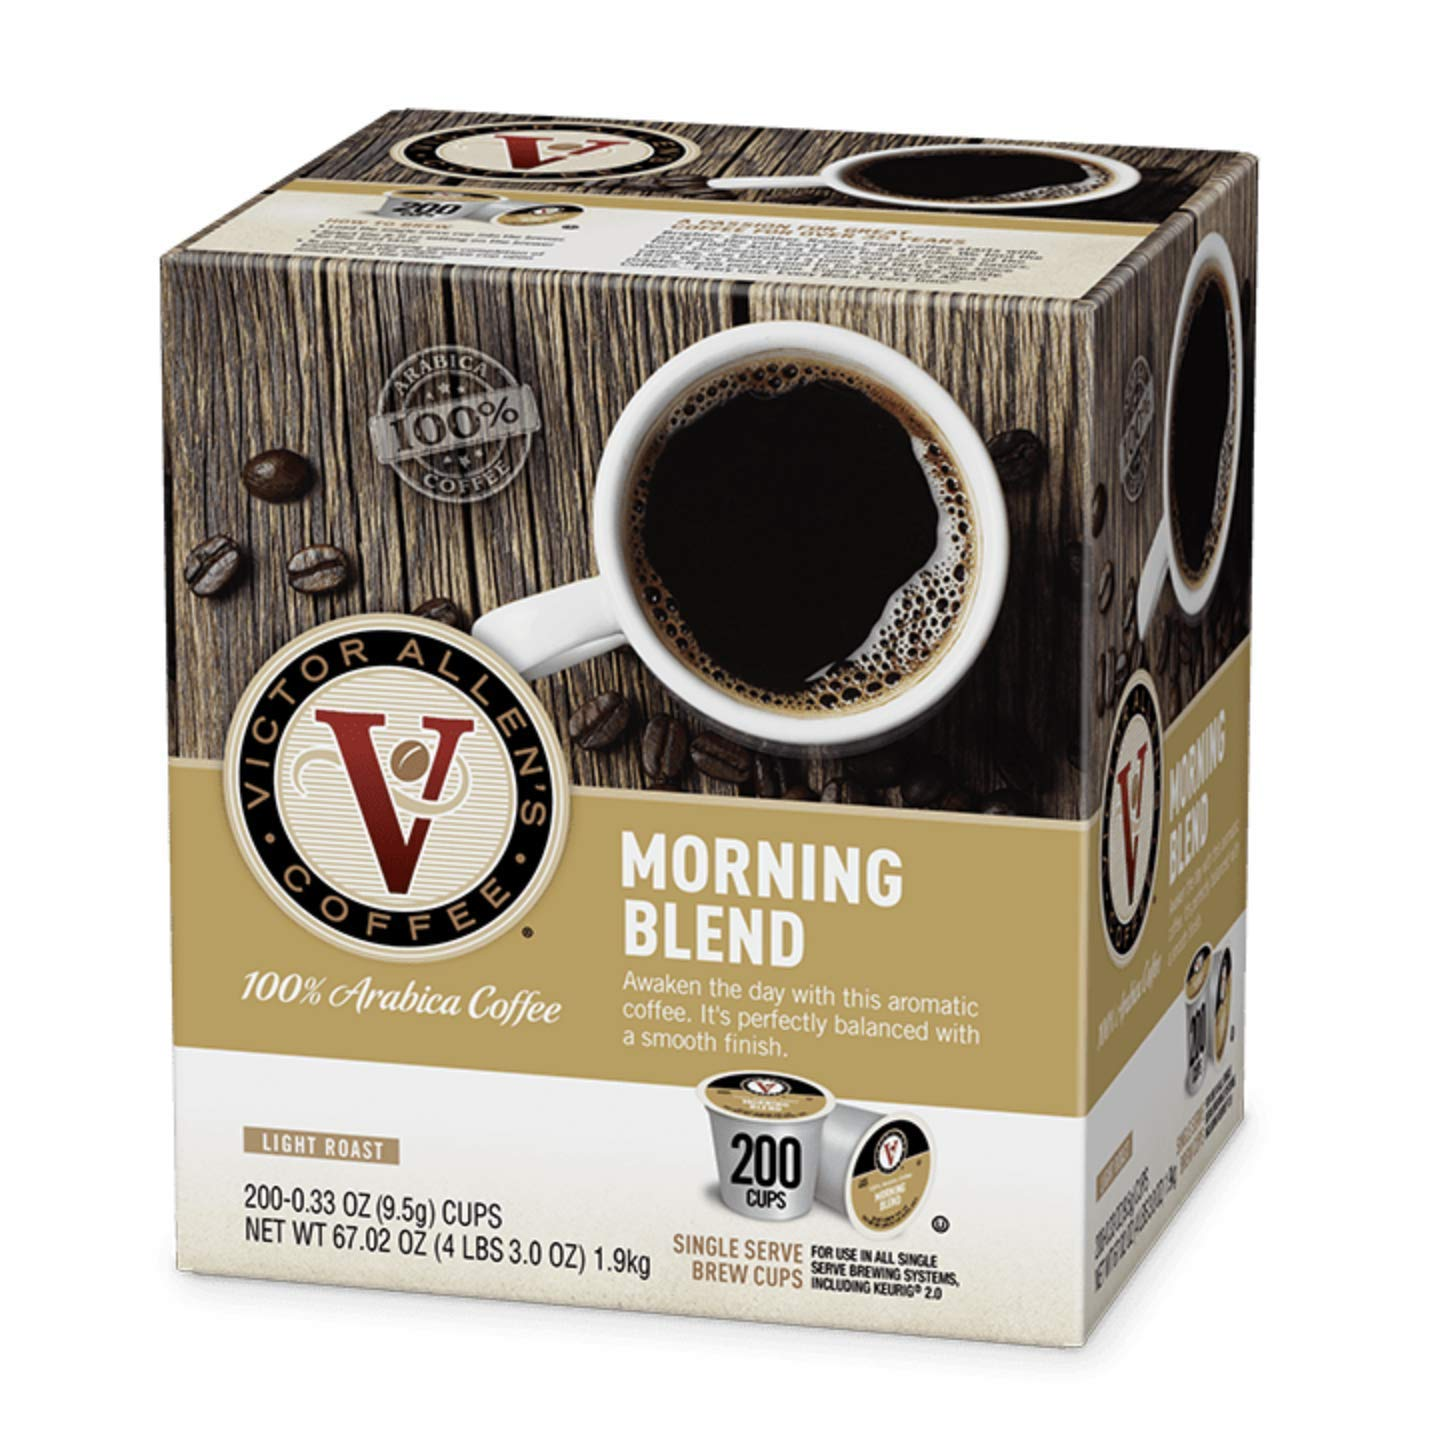 Morning Blend for K-Cup Keurig 2.0 Brewers, Victor Allen's Coffee Light Roast Single Serve Coffee Pods, 200 Count by Victor Allen (Image #1)